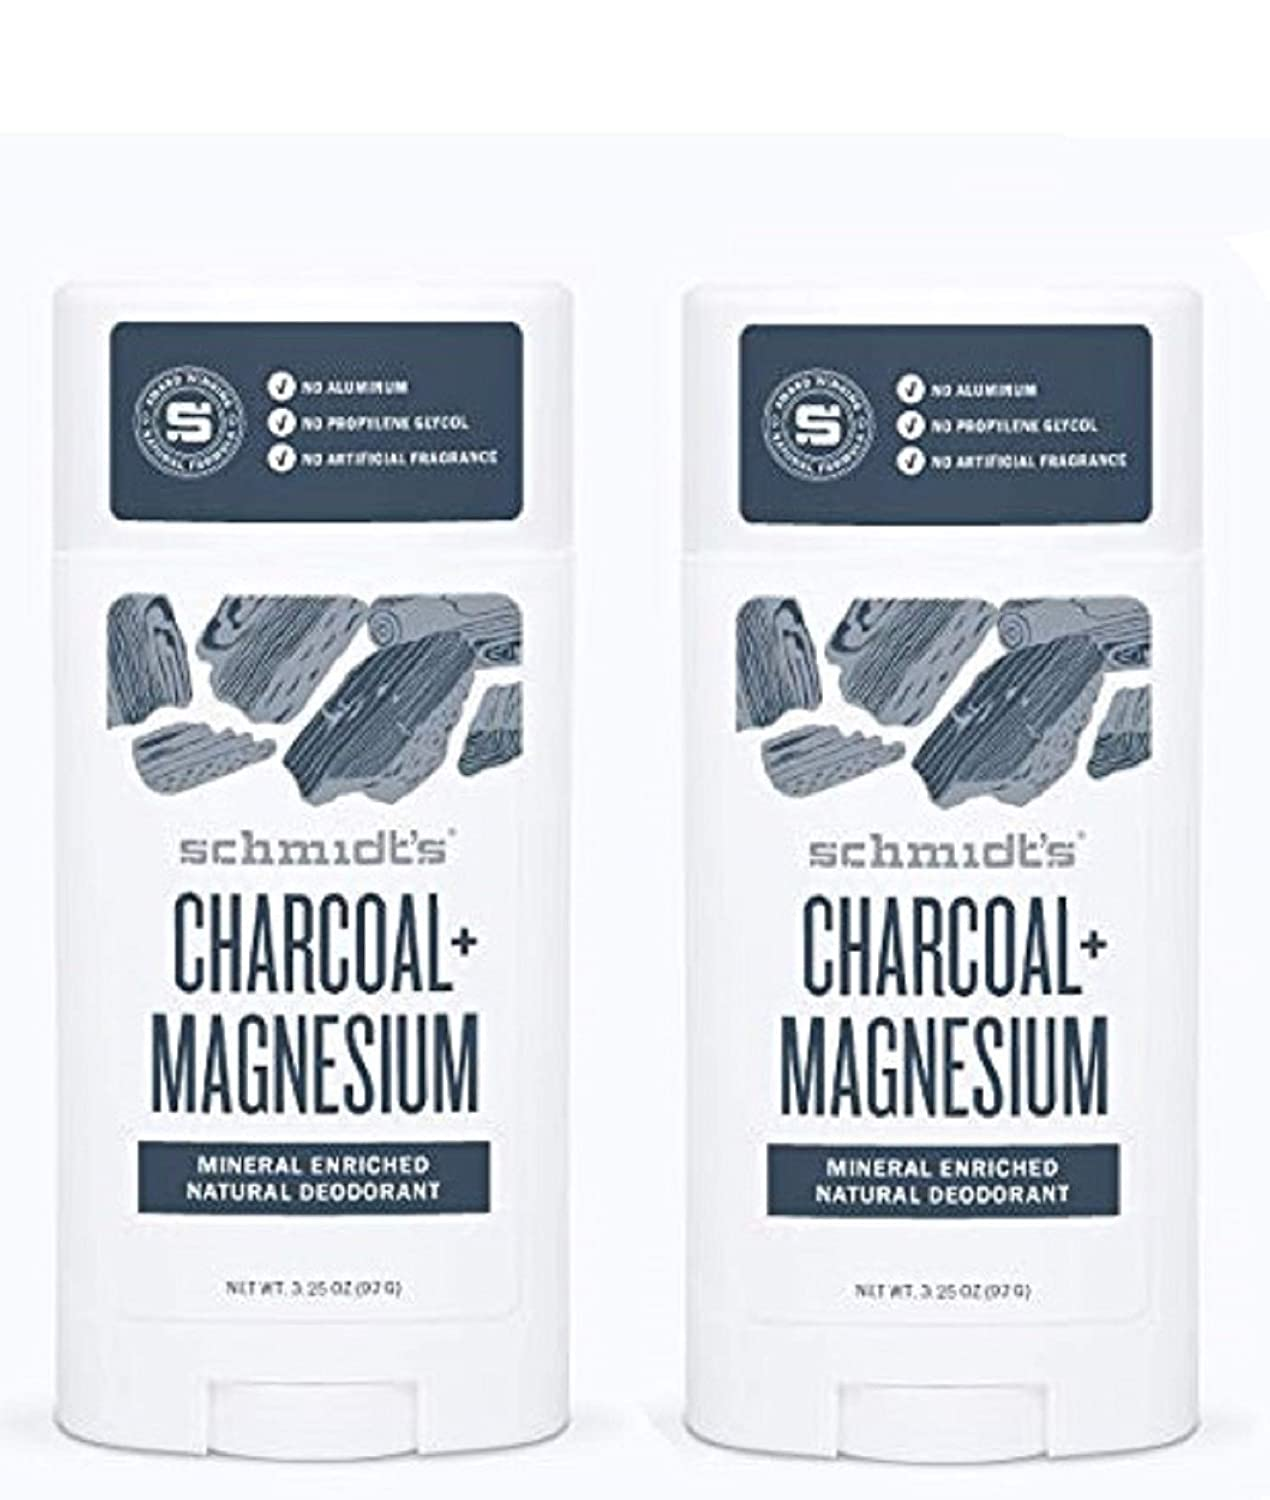 Schmidt's Deodorant Stick Charcoal + Magnesium 3.25 oz (Pack of 2) - Free of Aluminum, Vegan, Natural and Cruelty-Free